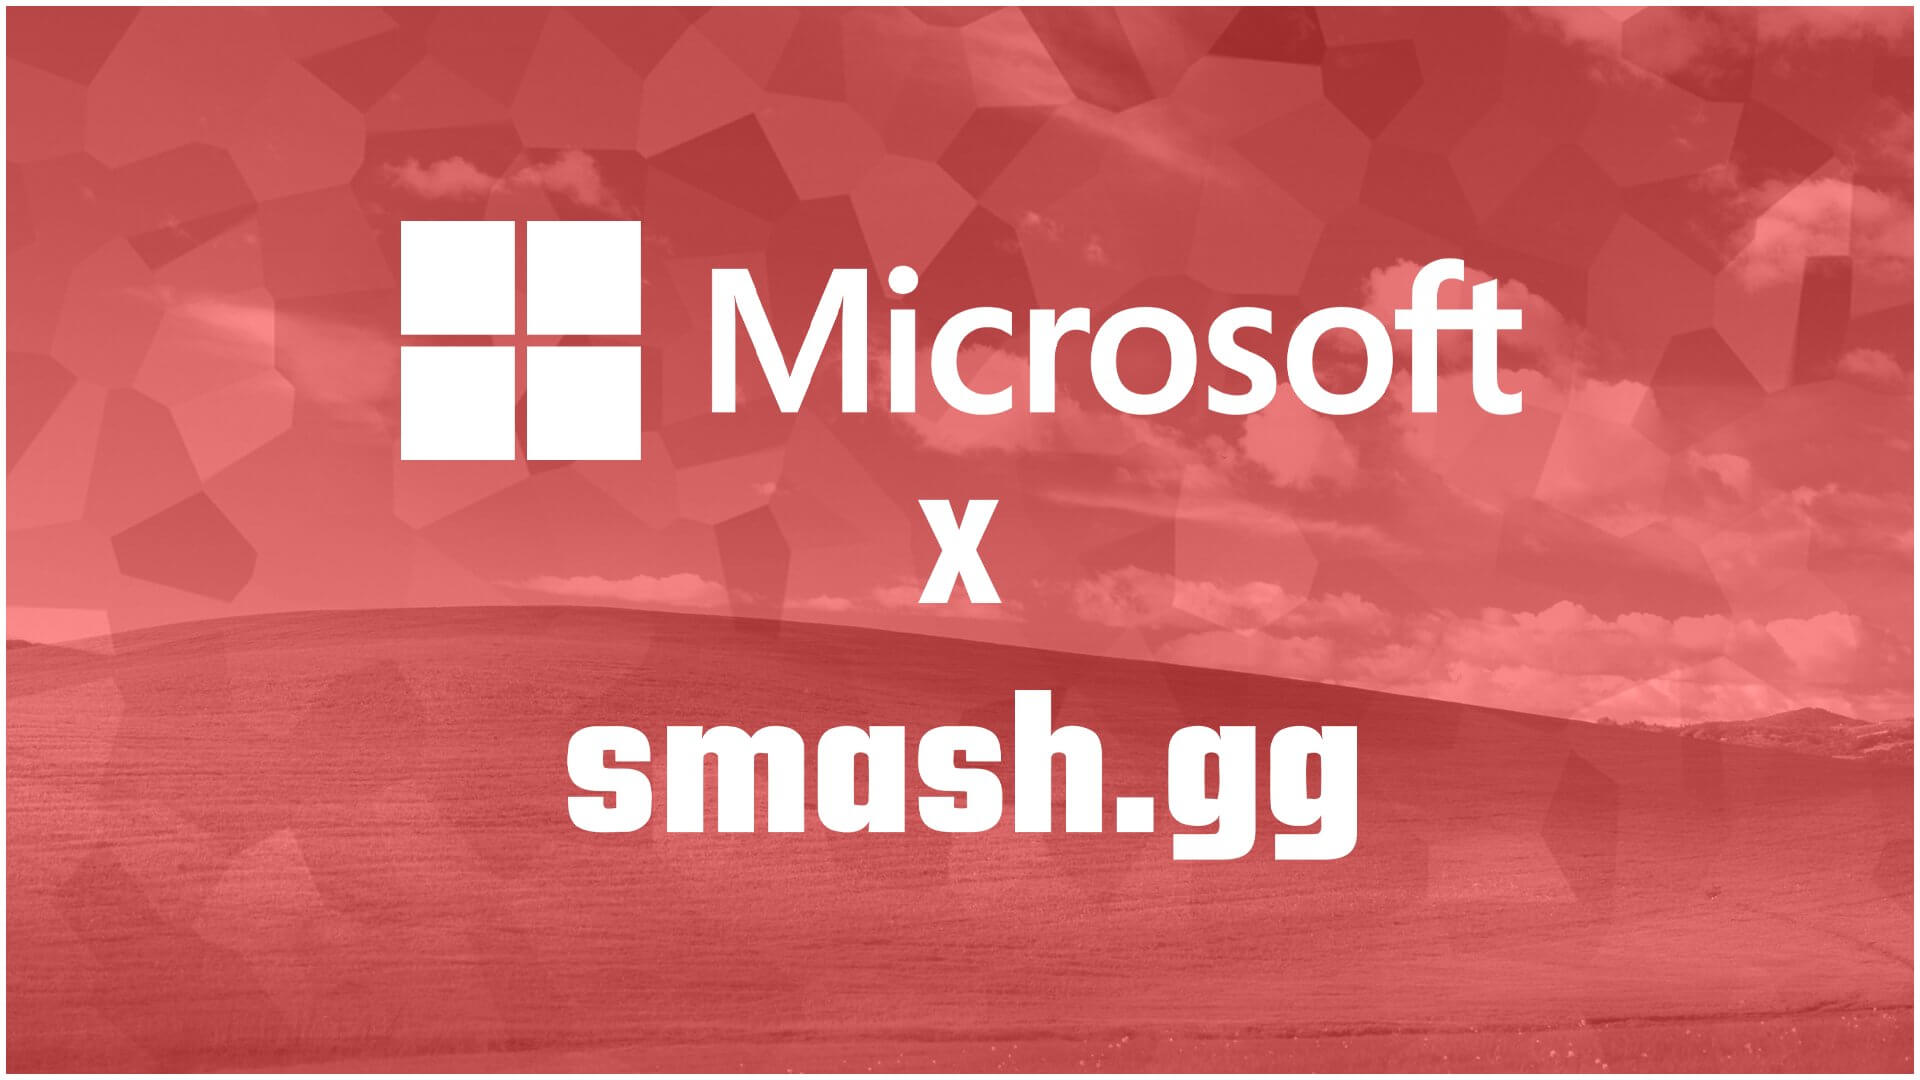 Tournament Organizing Website Smash.gg has been acquired by Microsoft